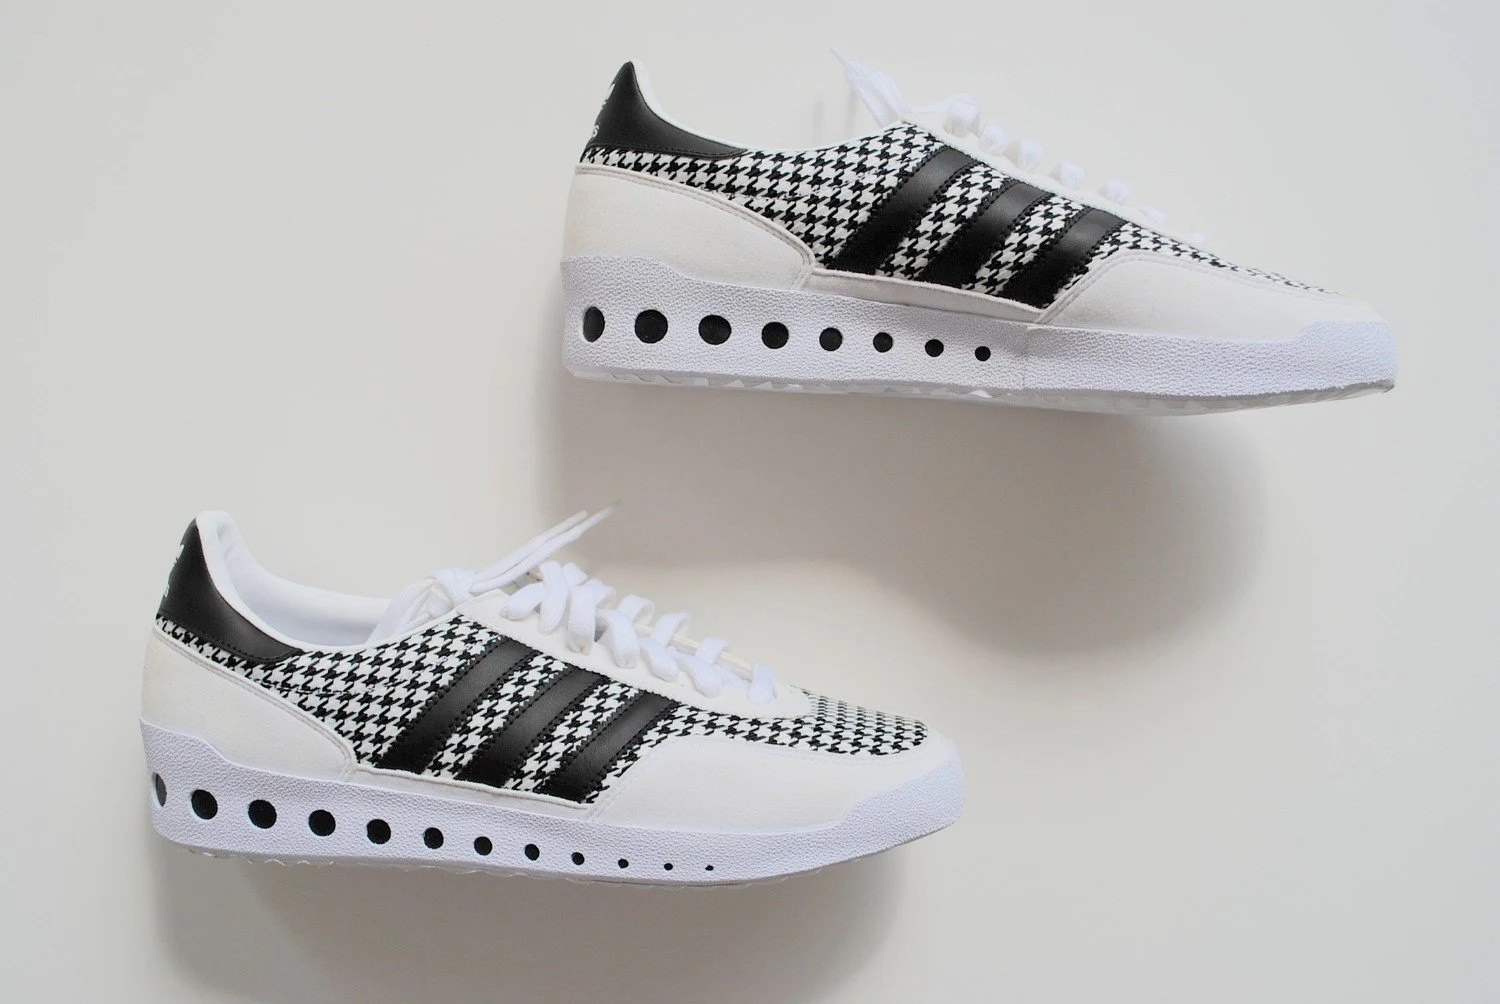 Vintage Adidas Black and White Sneakers